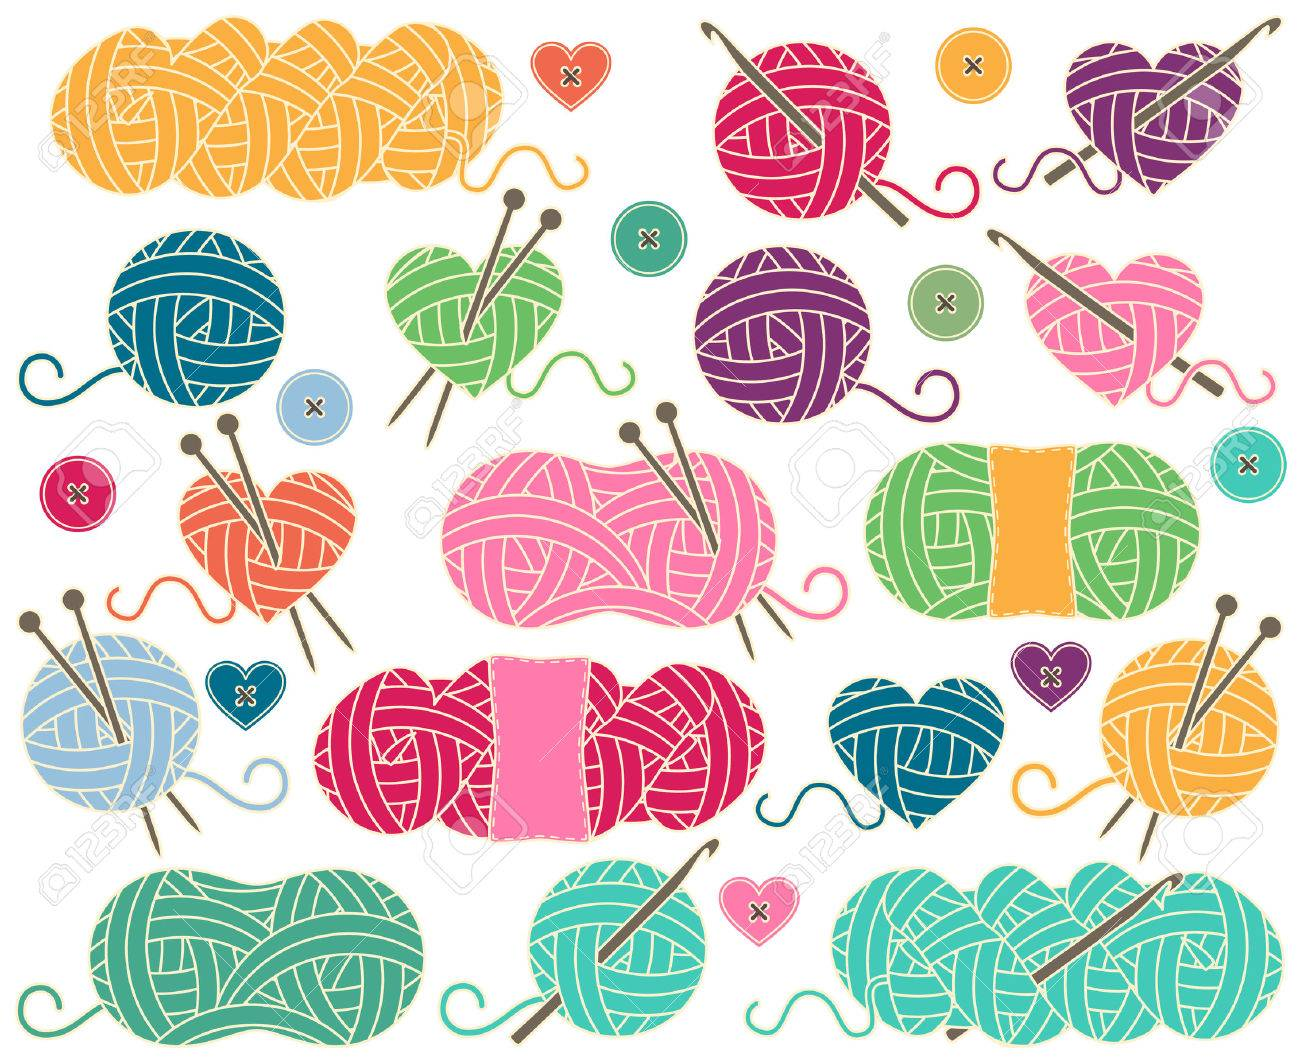 Cute Collection of Balls of Yarn, Skeins of Yarn or Thread for Knitting and Crochet - 63106634